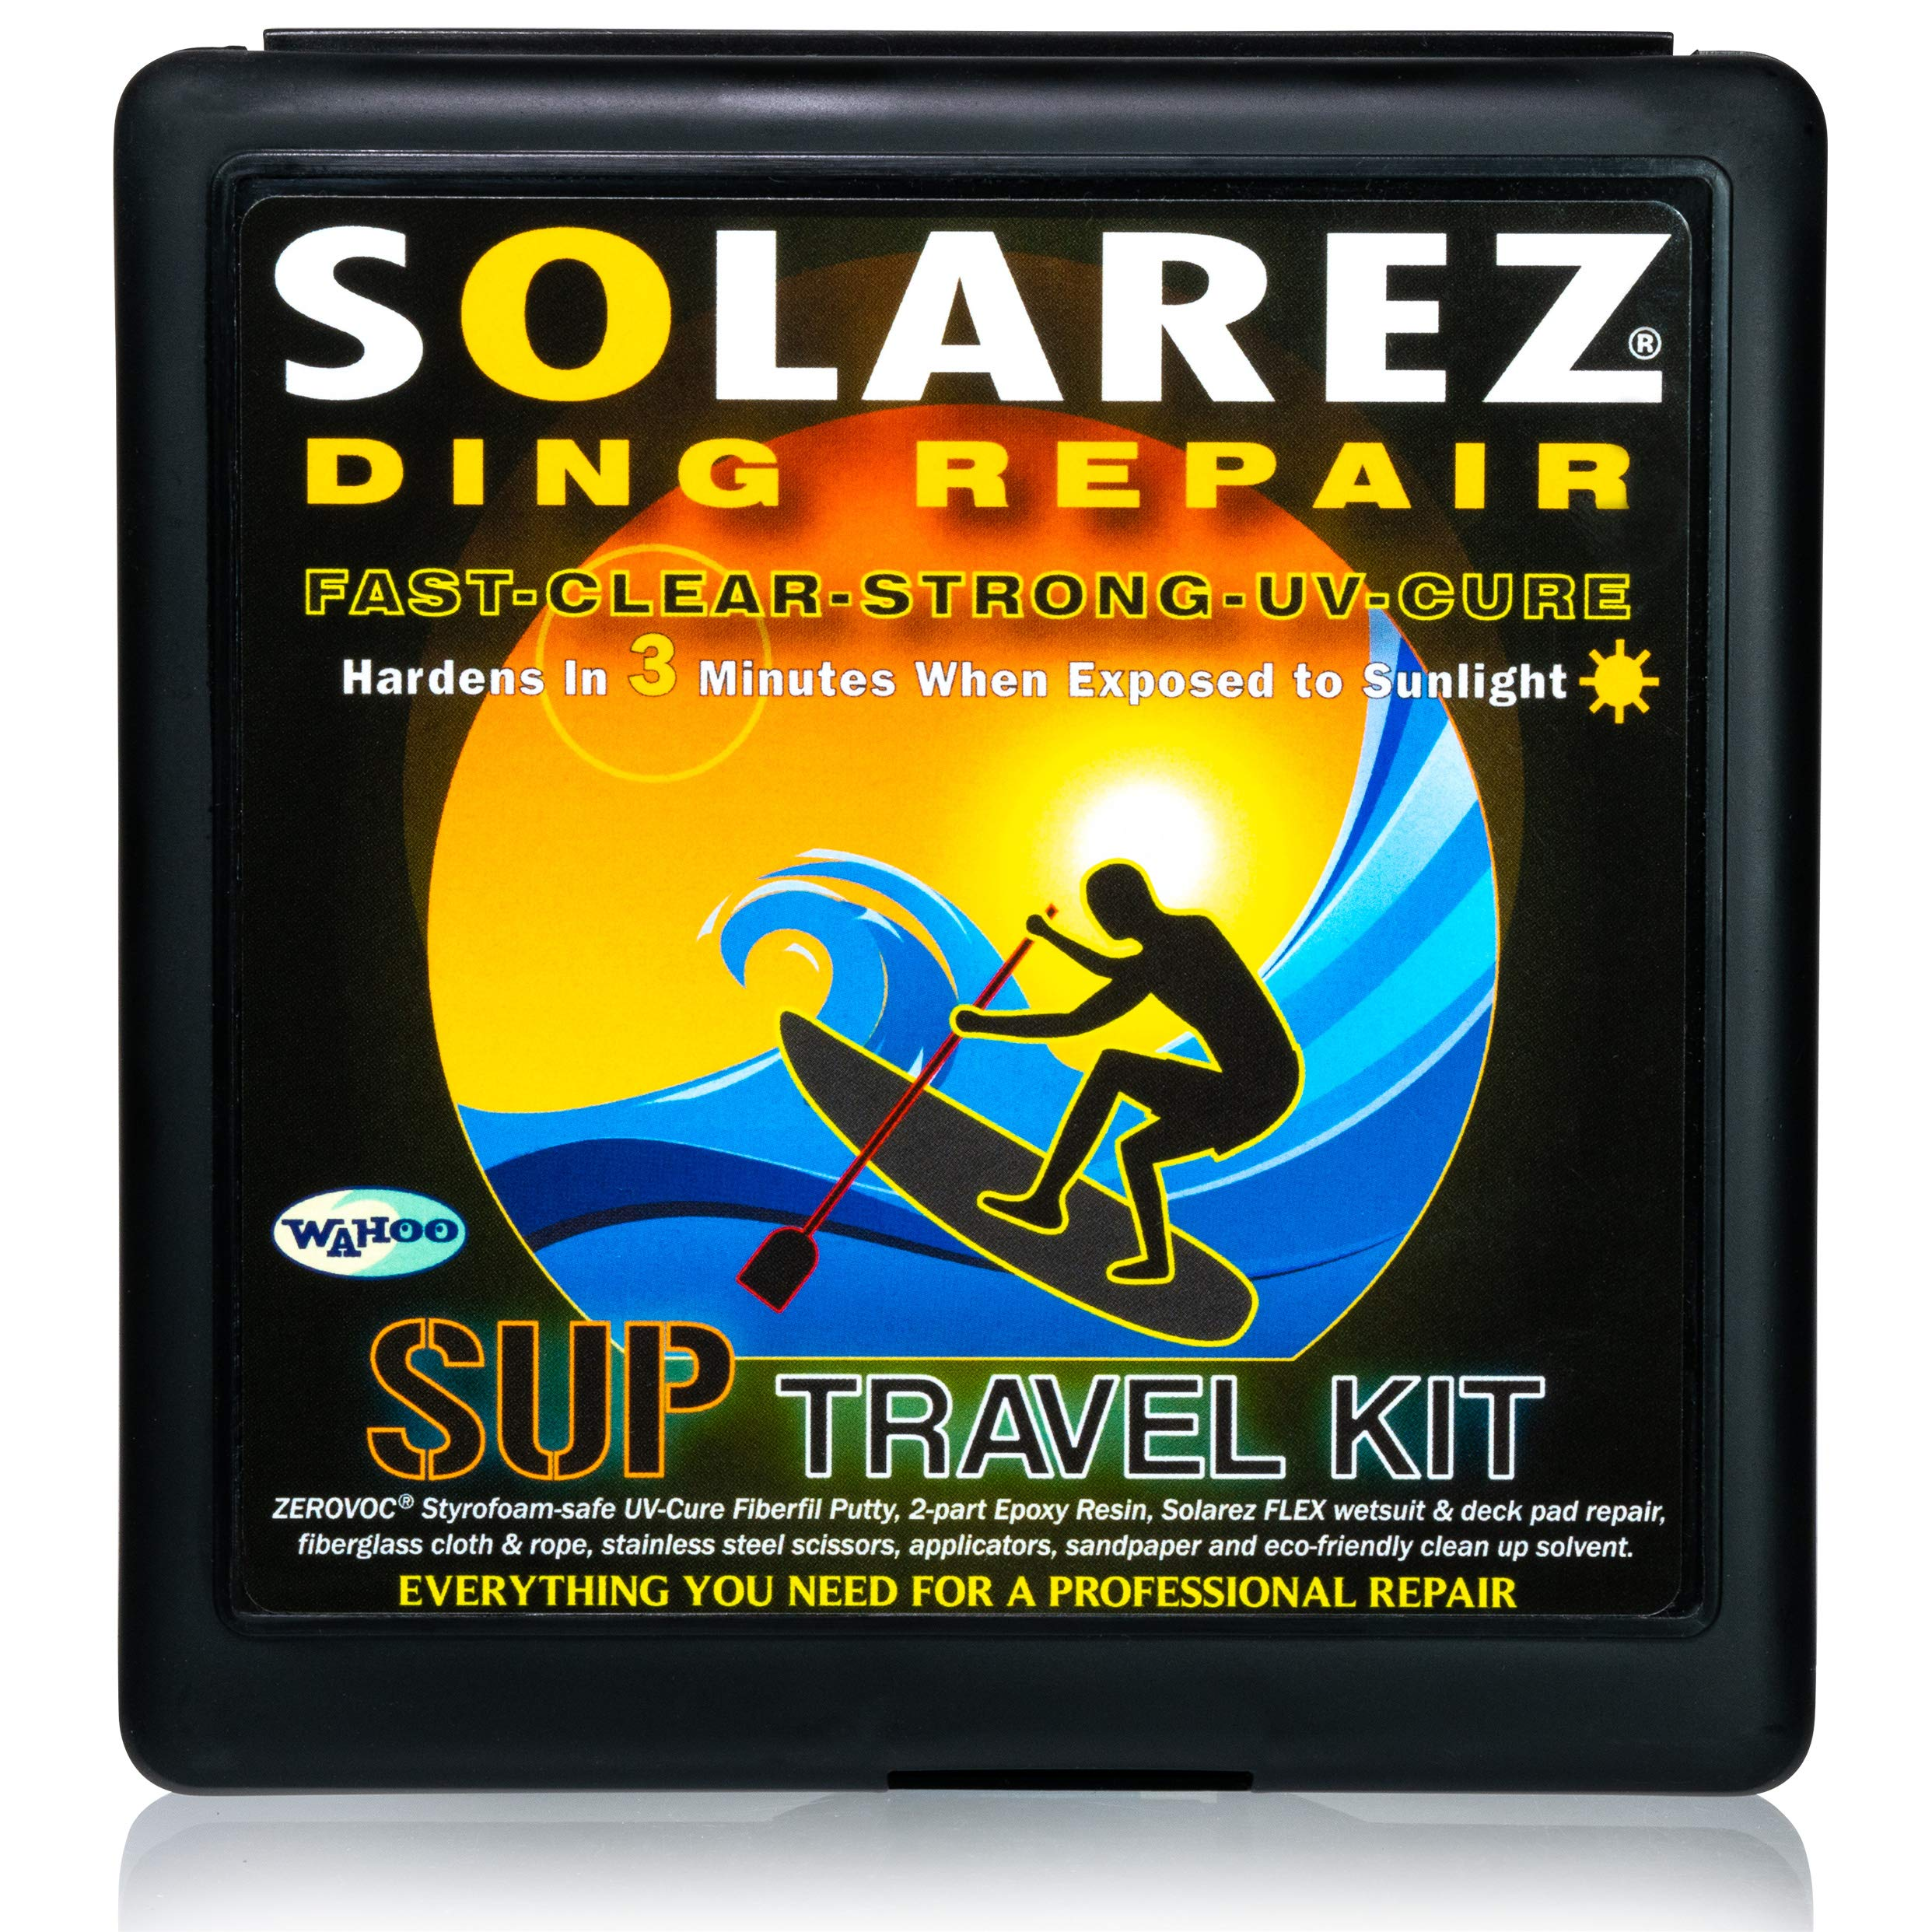 SOLAREZ UV Cure SUP Epoxy Pro Travel Kit - Epoxy Surfboard Repair Kit ~ Cures 3 min in The Sun! Epoxy Surfboard Repair, SUP Repair, Epoxy Wakeboard Repair, Low Odor ~ Eco Friendly, Made in The USA! by SOLAREZ